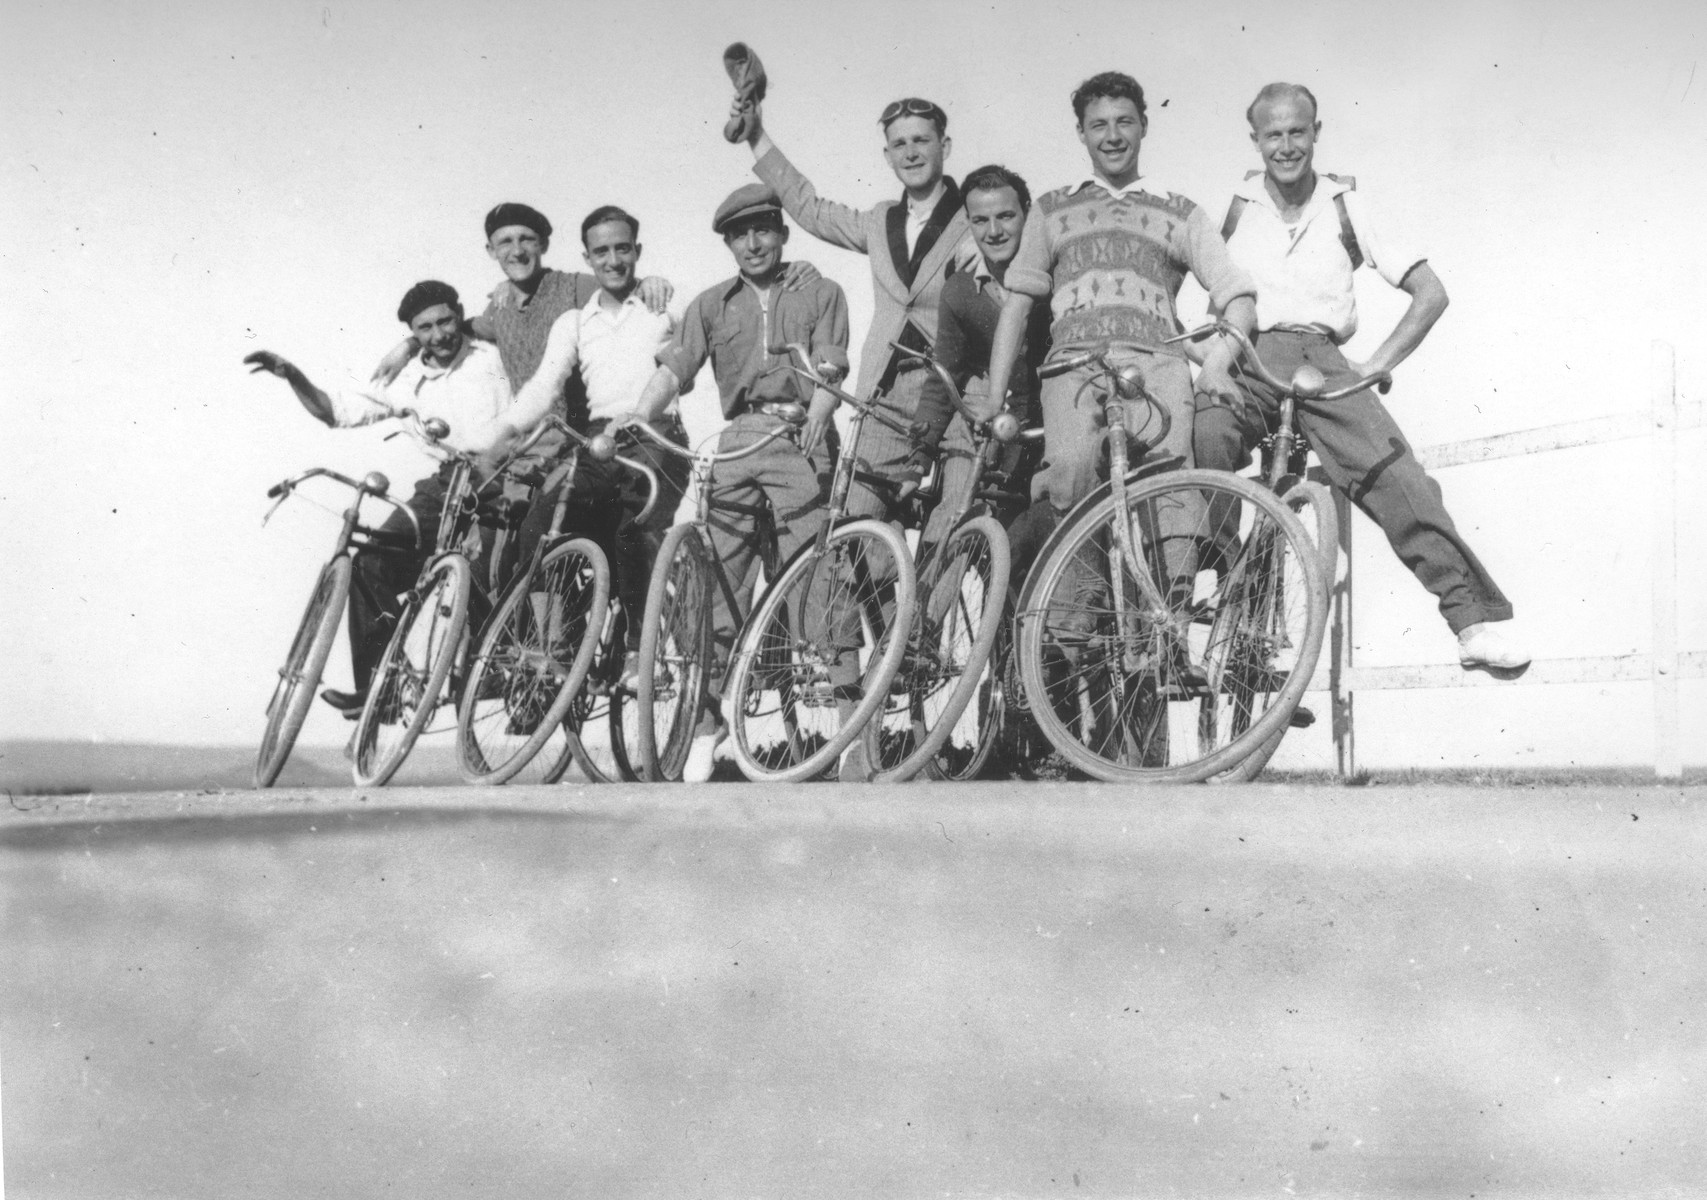 Group portrait of members of the Maccabi Jewish sports club on a bicycle trip in Salonika.  Among those pictured is Samuel Rouben.